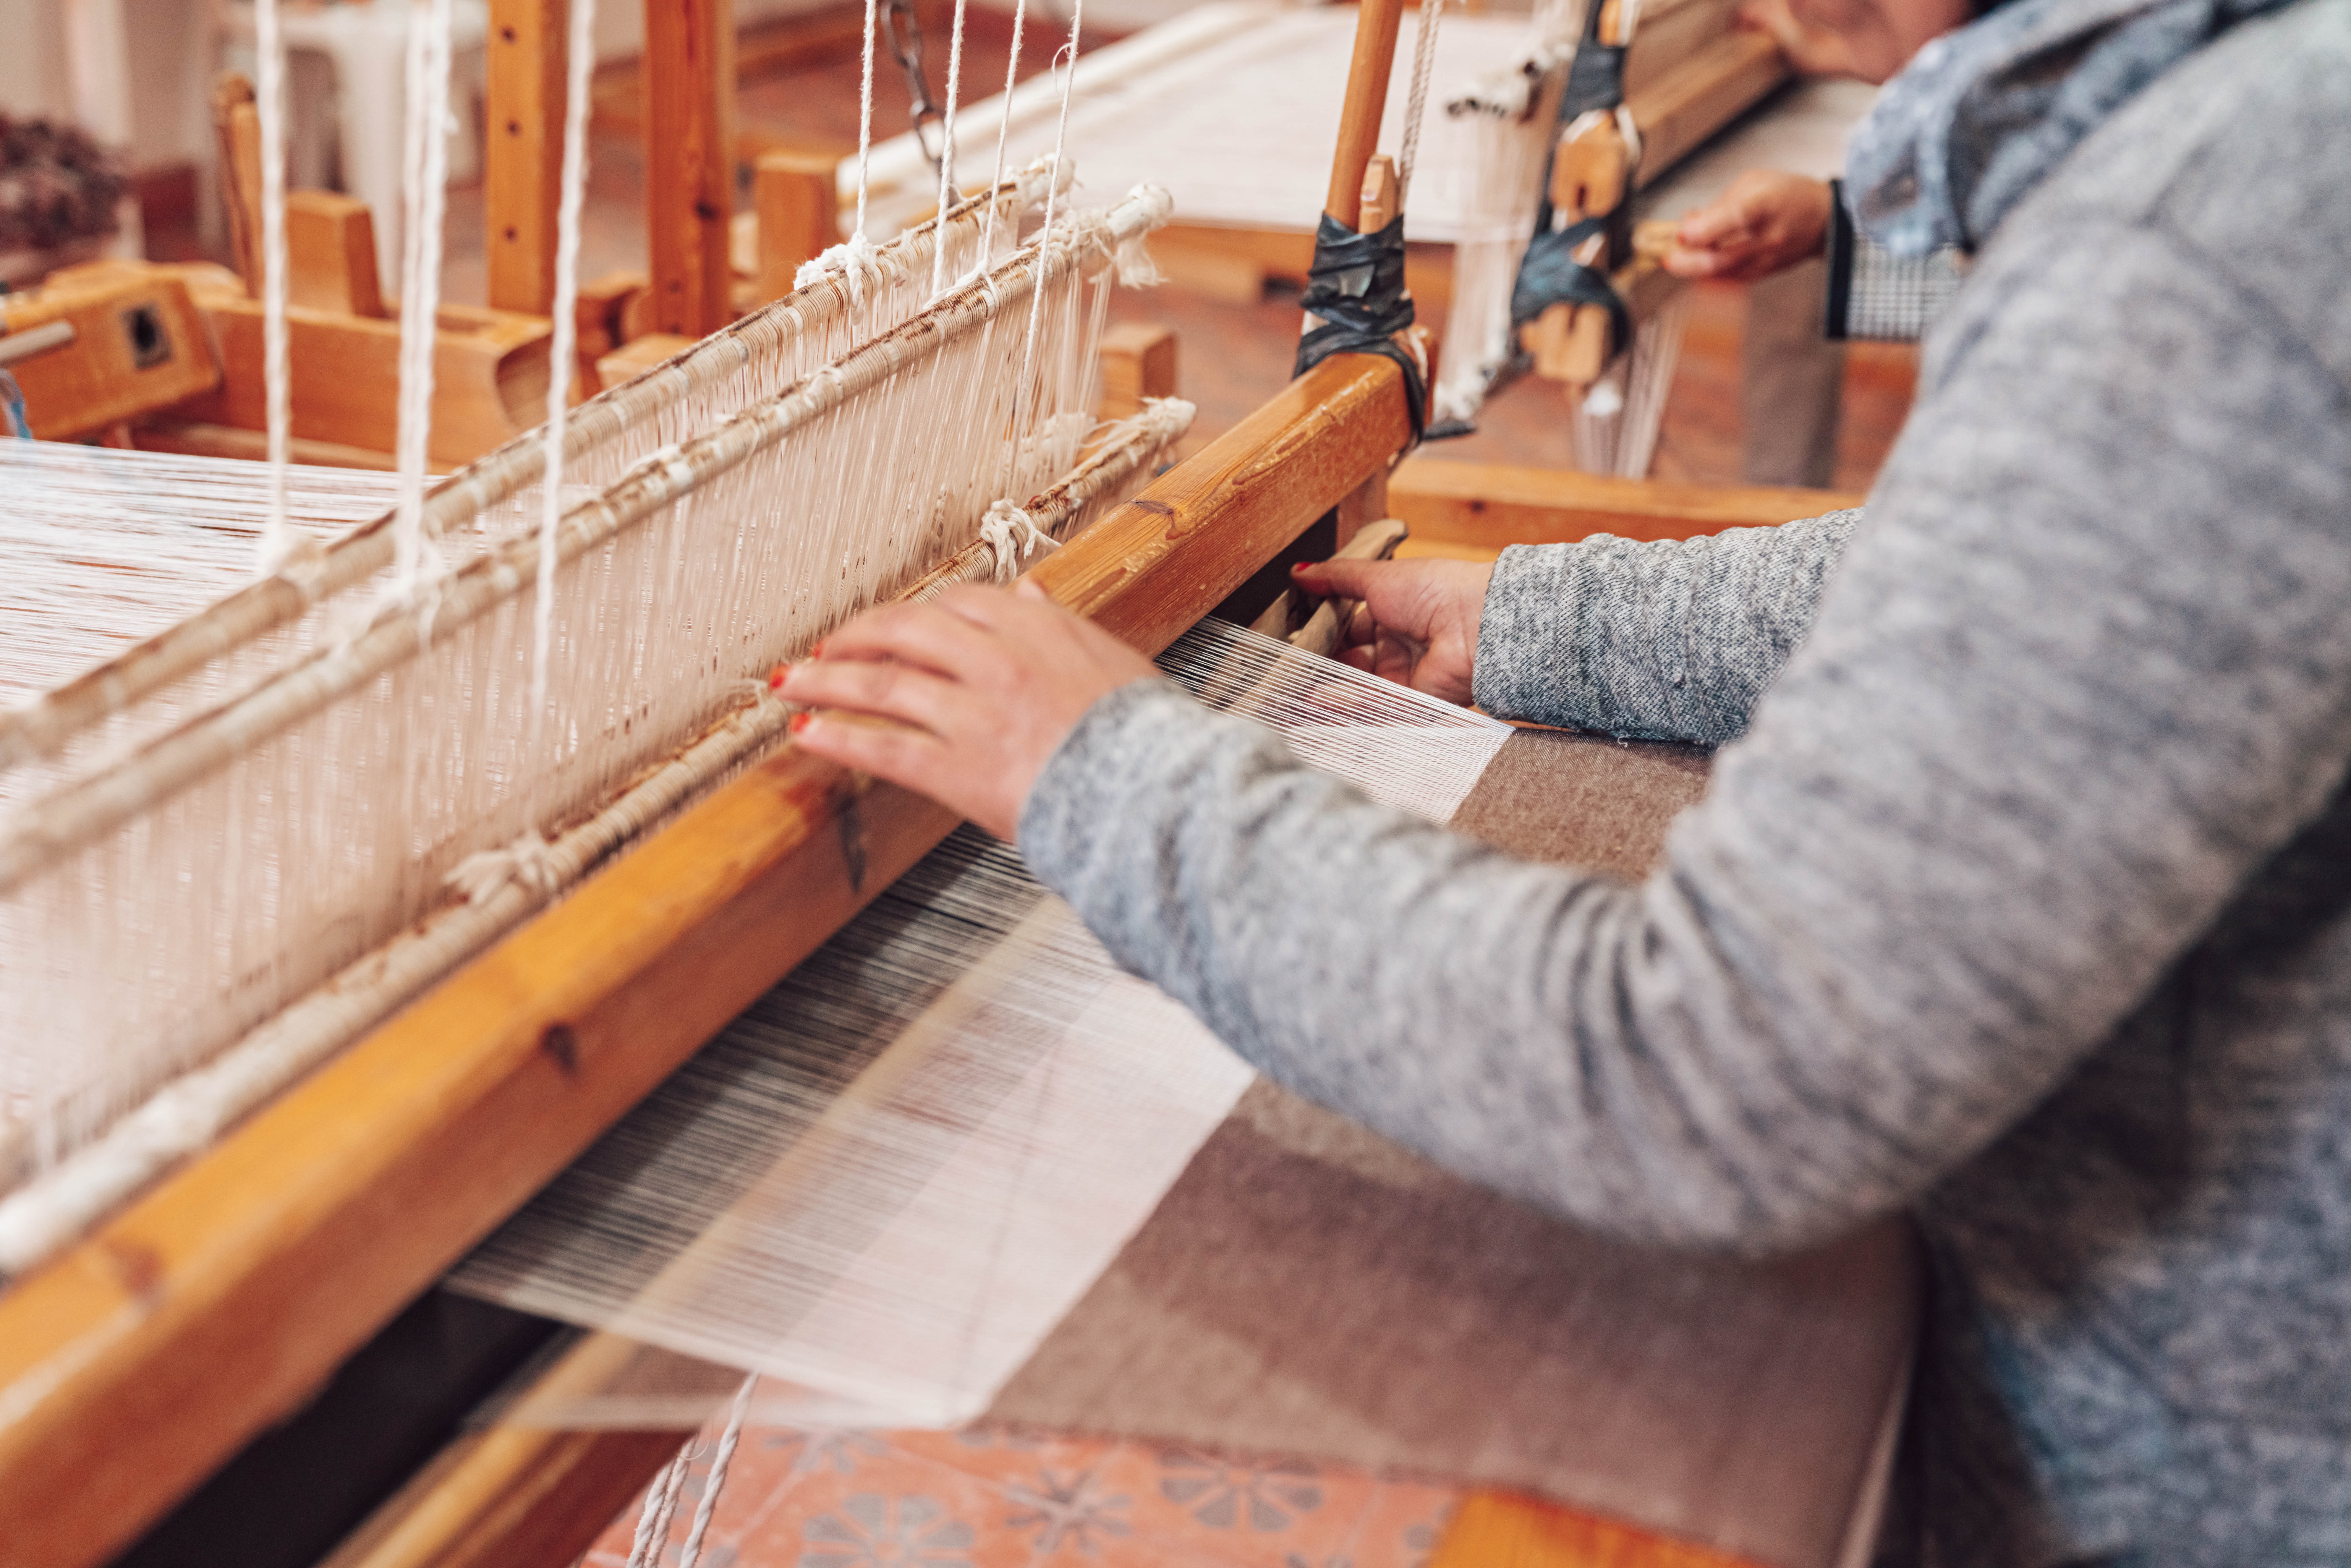 Close up of upright traditional weaving loom